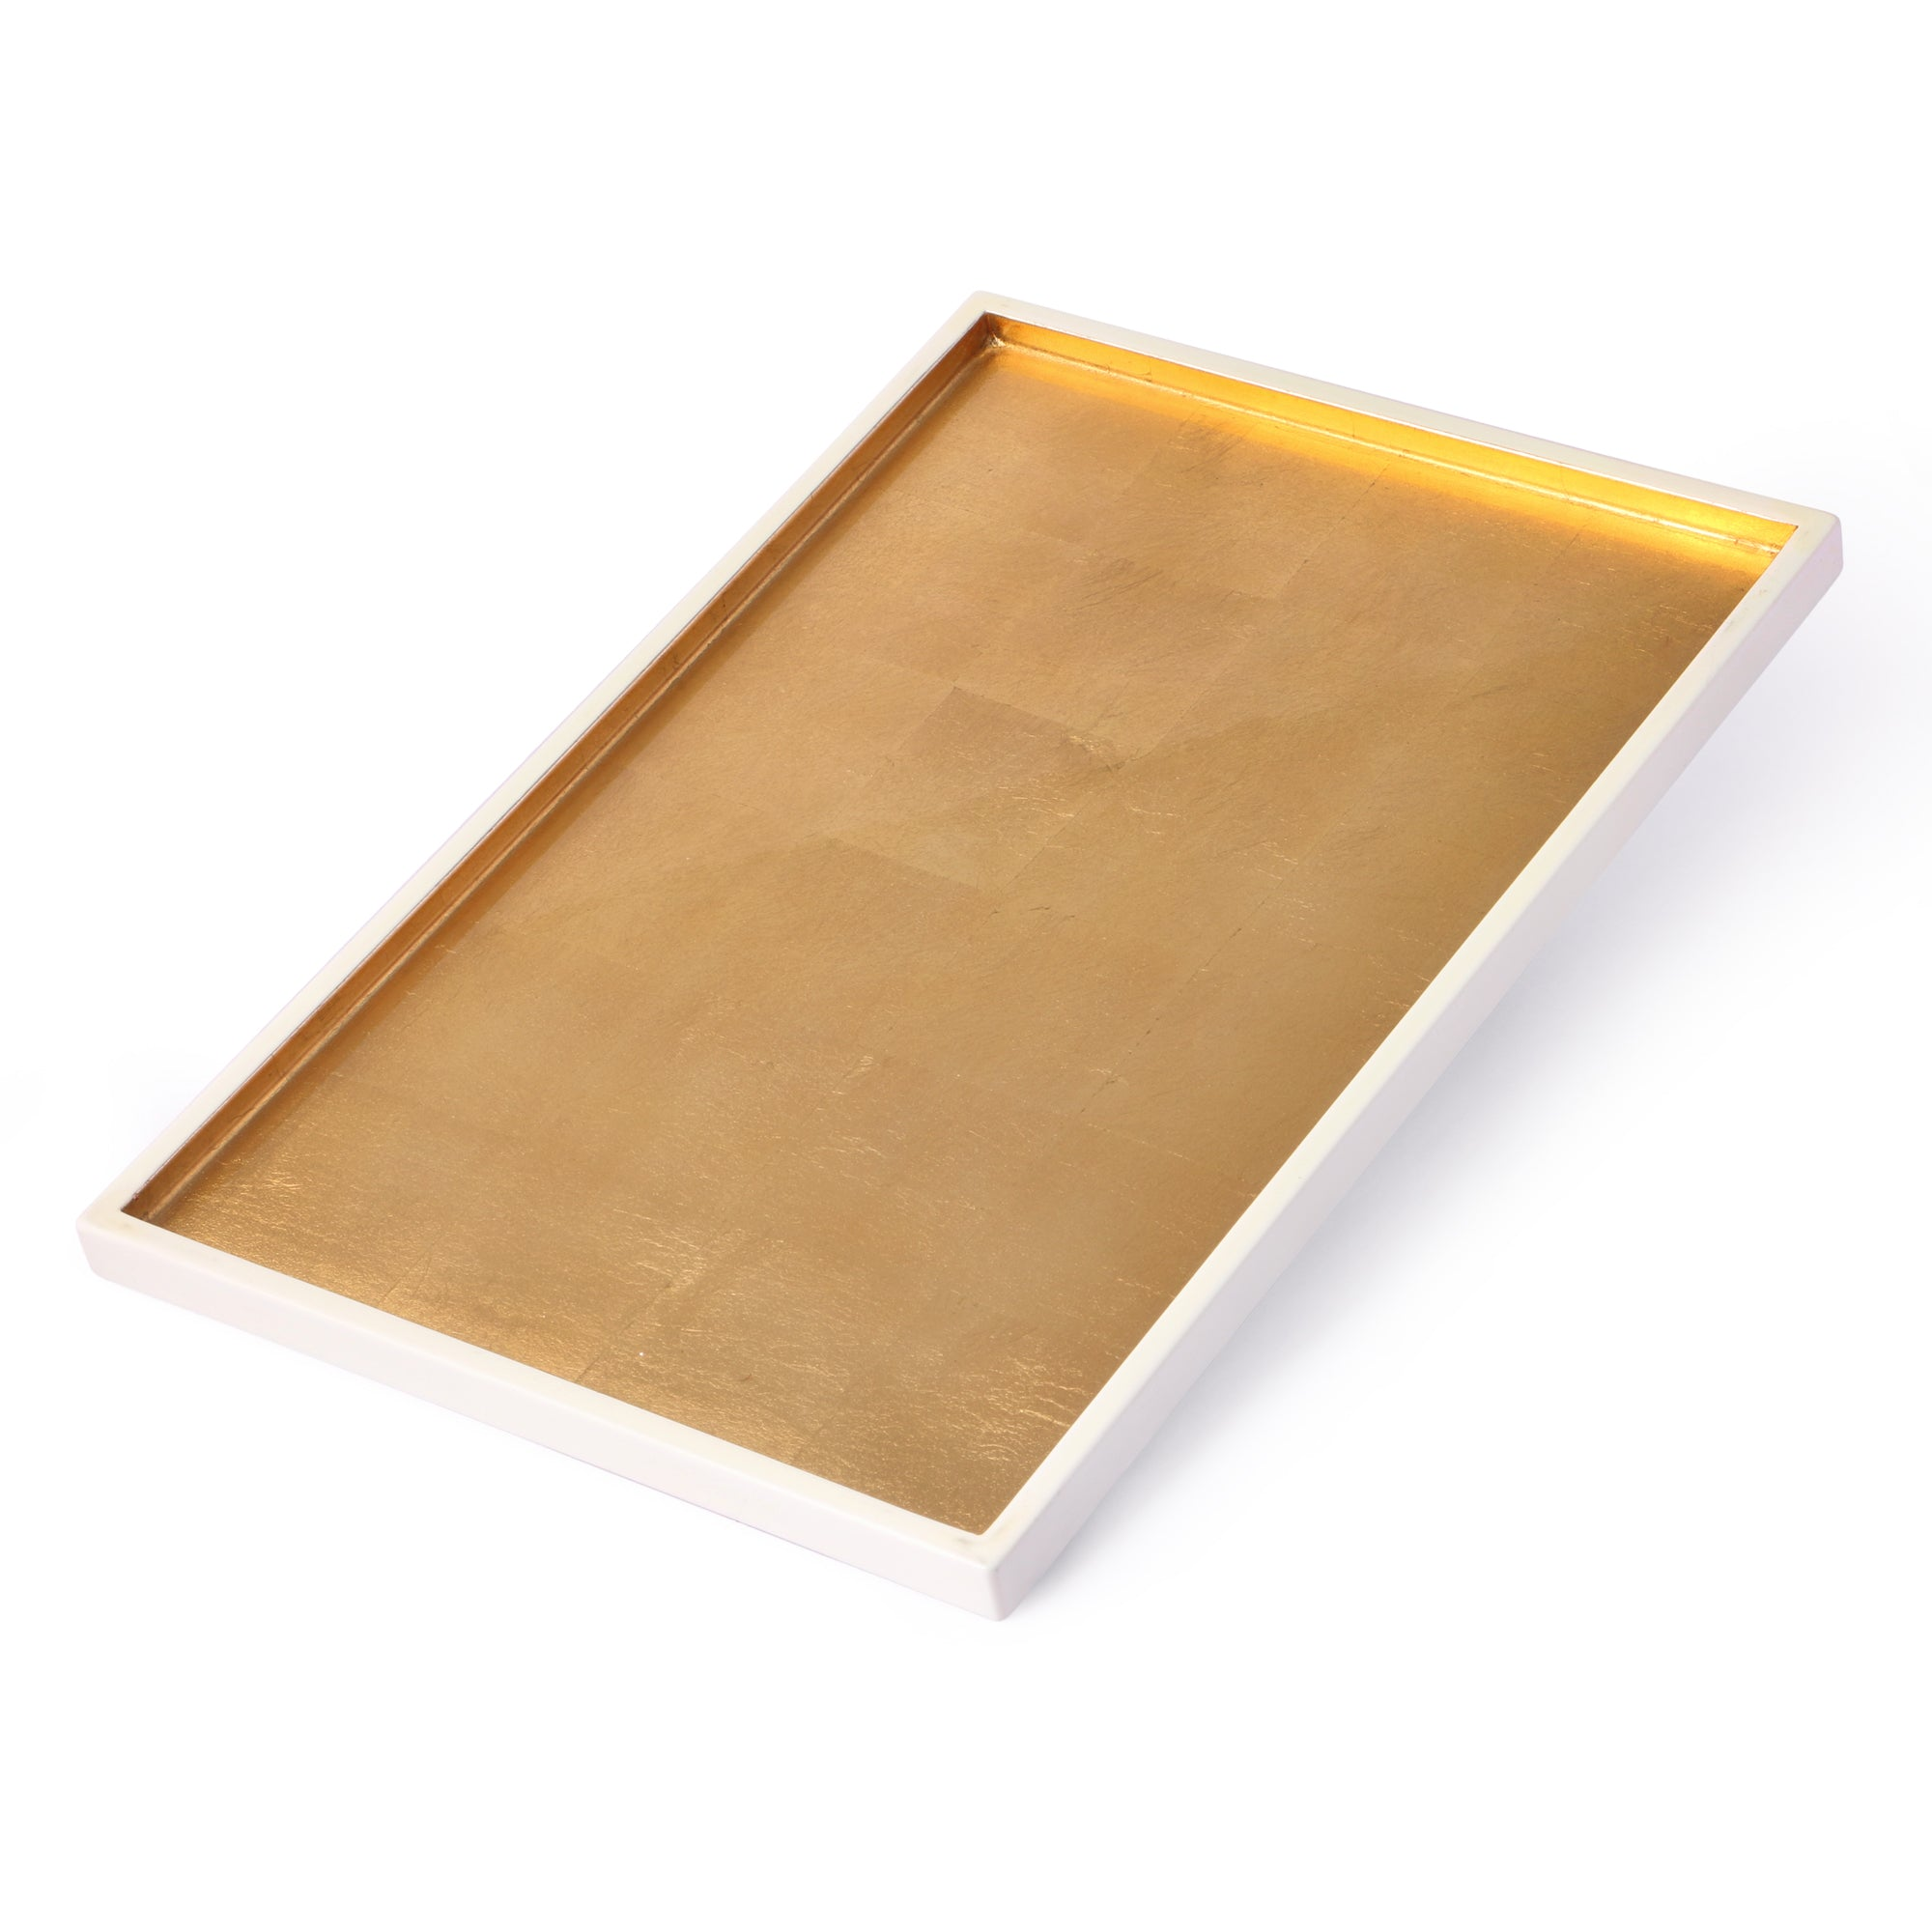 White & Gold Rectangle Lacquer Tray (Large)